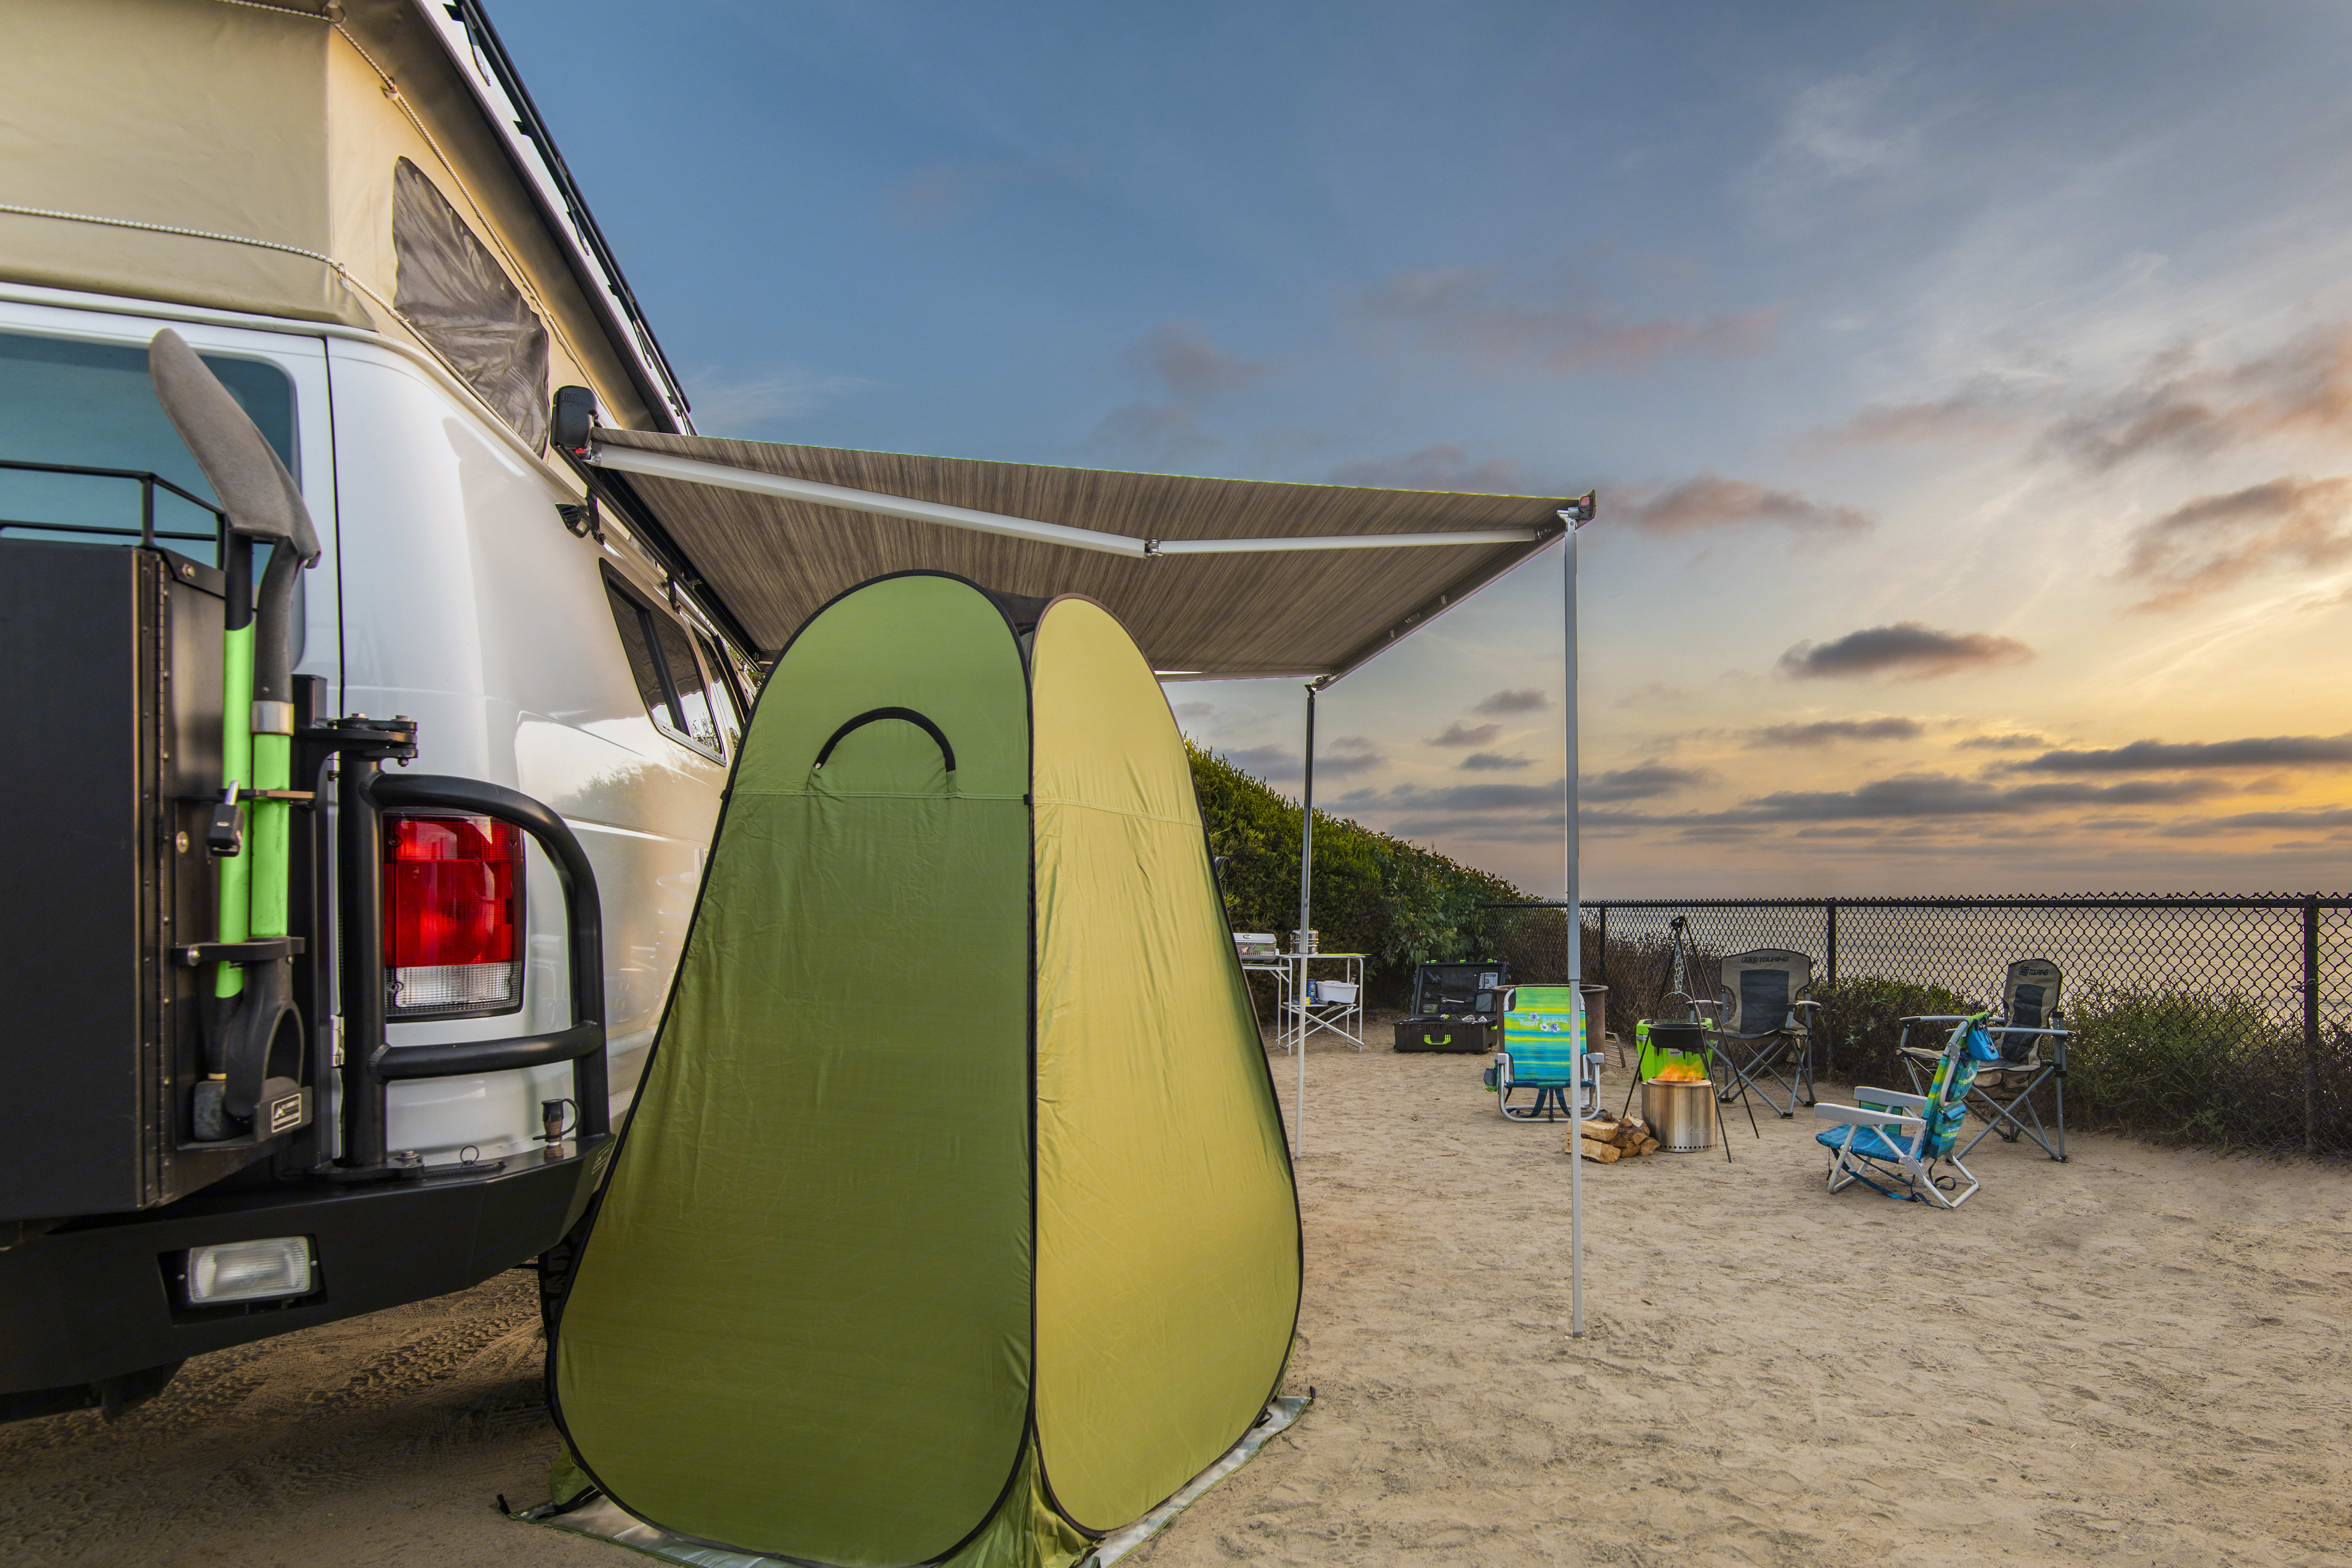 High quality Fiamma awning is easy to open and close up. Keeps you cool from the sun and dry from the rain. A lifesaver!. Ford Econoline/Sportsmobile 2002